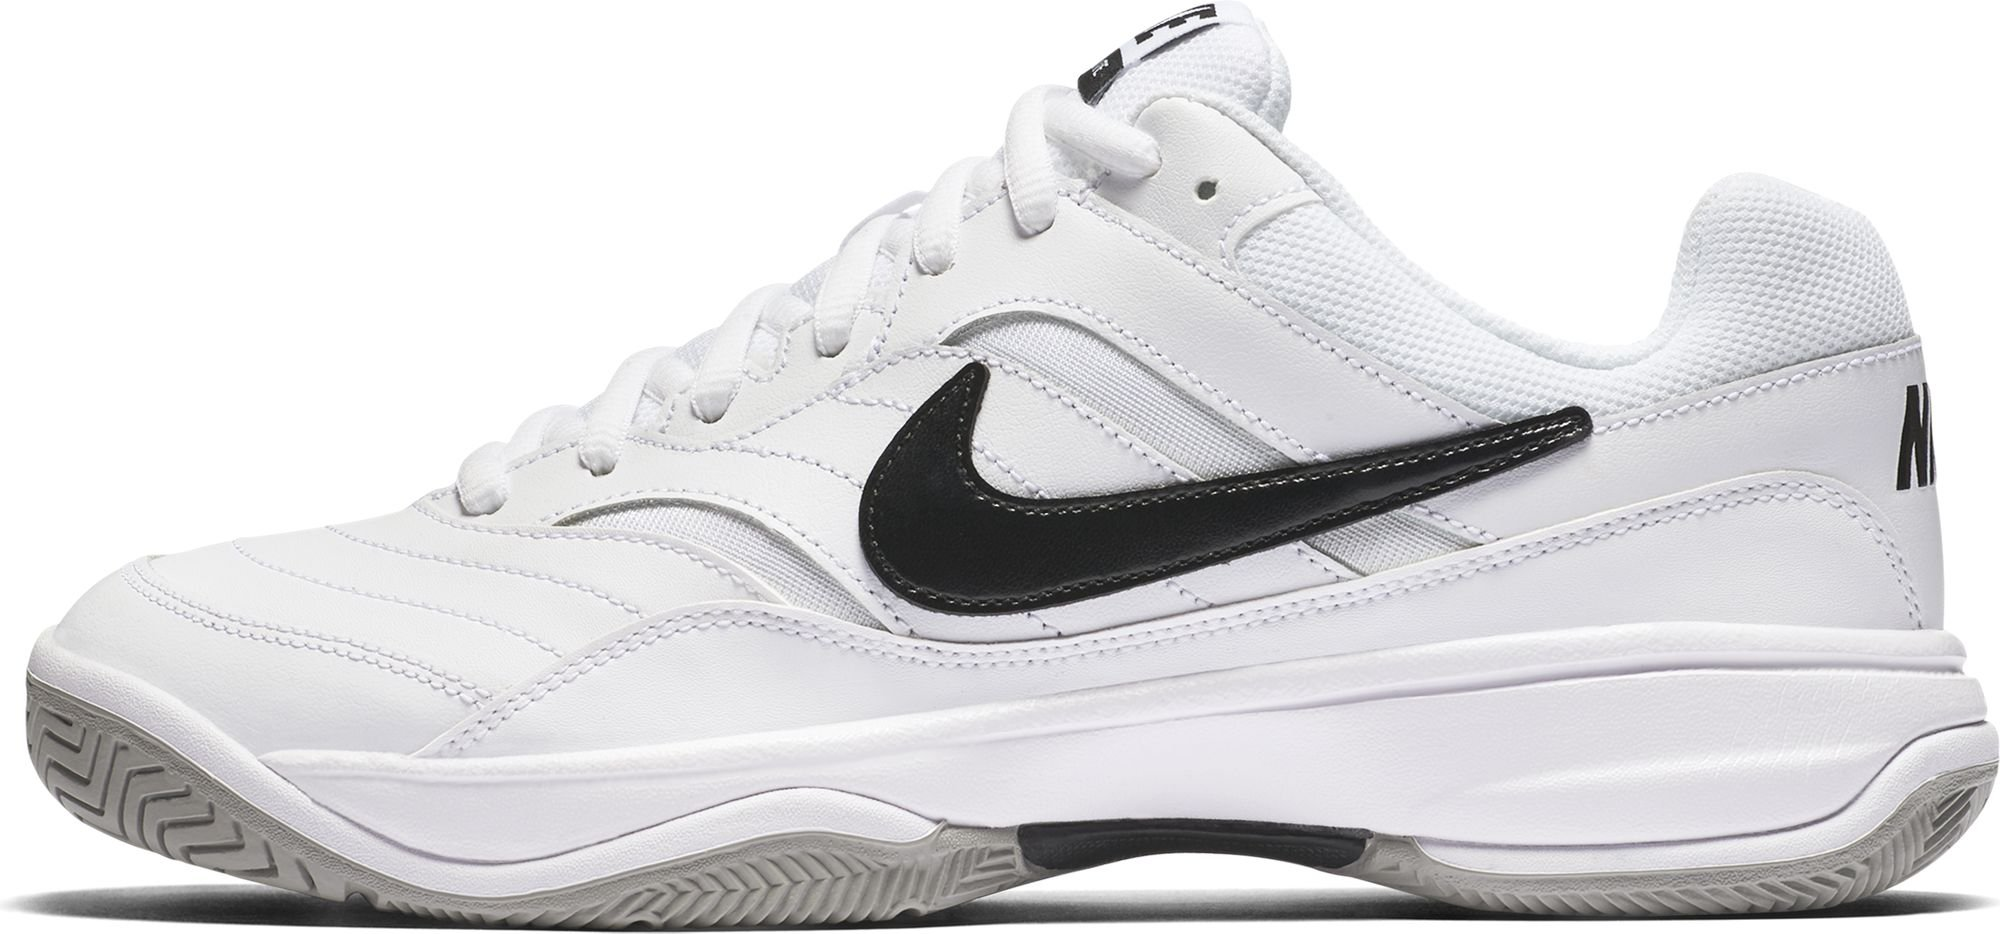 NIKE Men's Court Lite Tennis Shoe, White/Medium Grey/Black, 11.5 D(M) US by NIKE